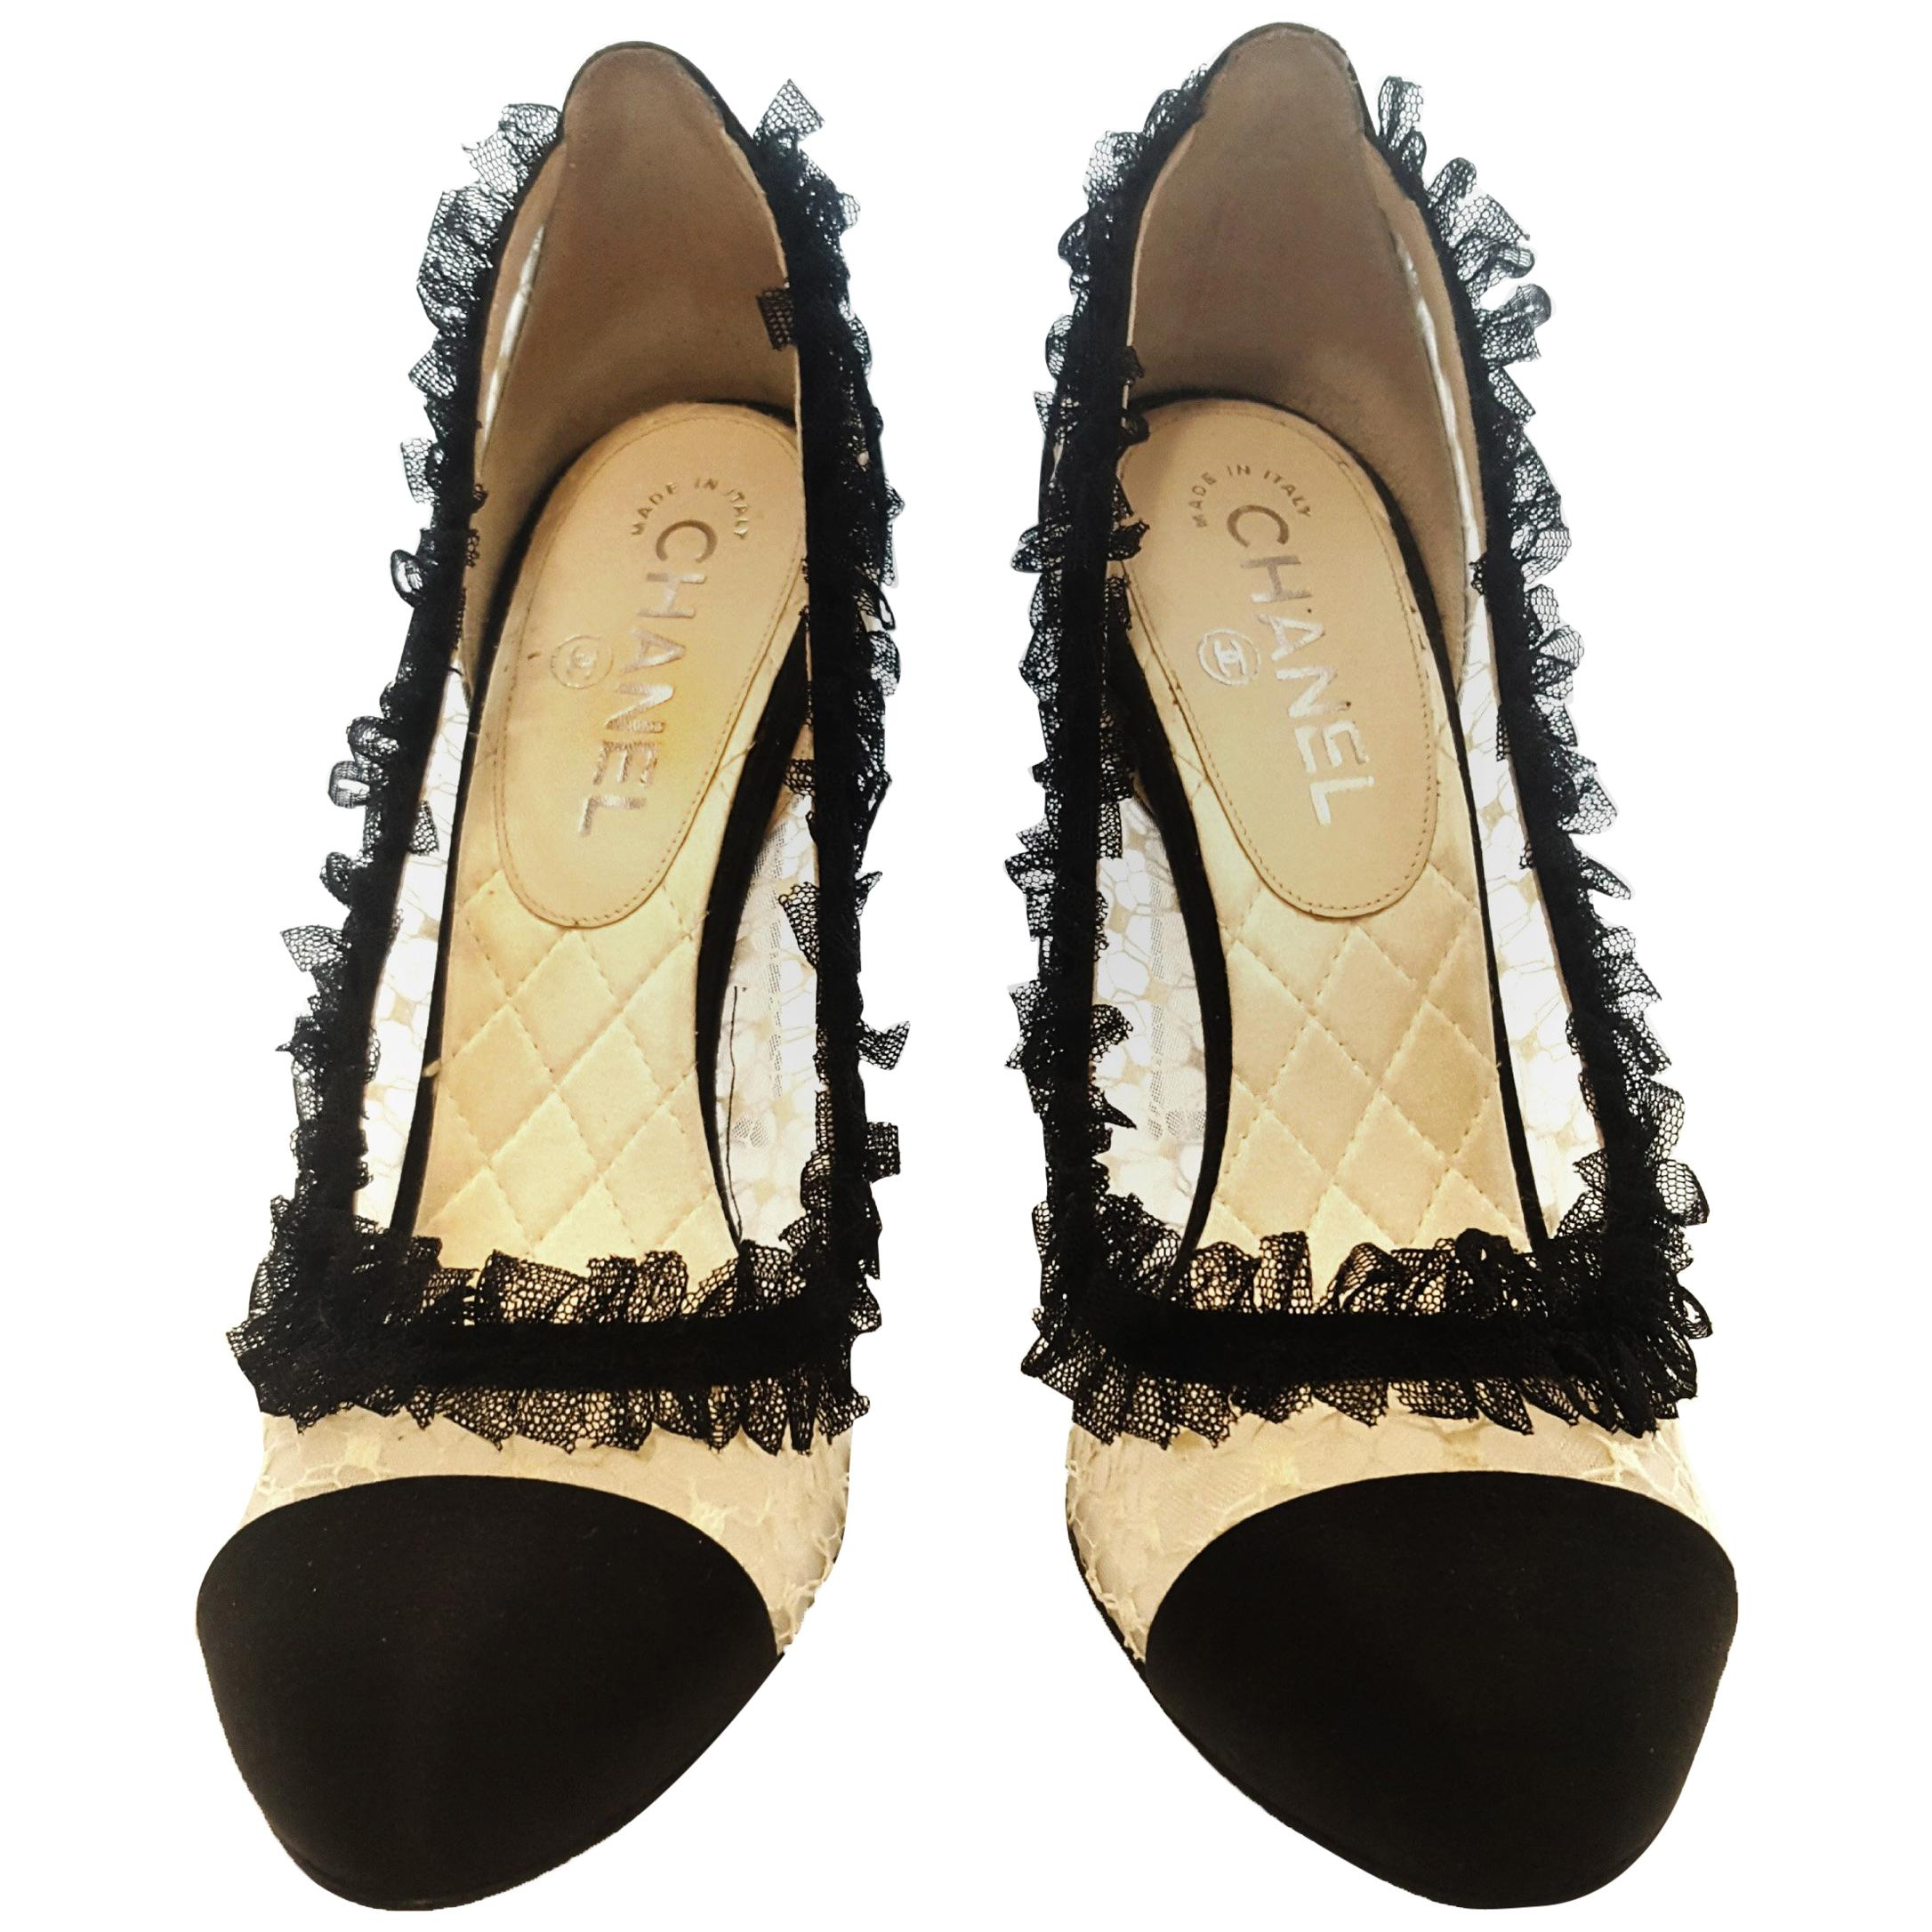 ed301e12f4c0b Vintage Chanel Shoes - 112 For Sale at 1stdibs